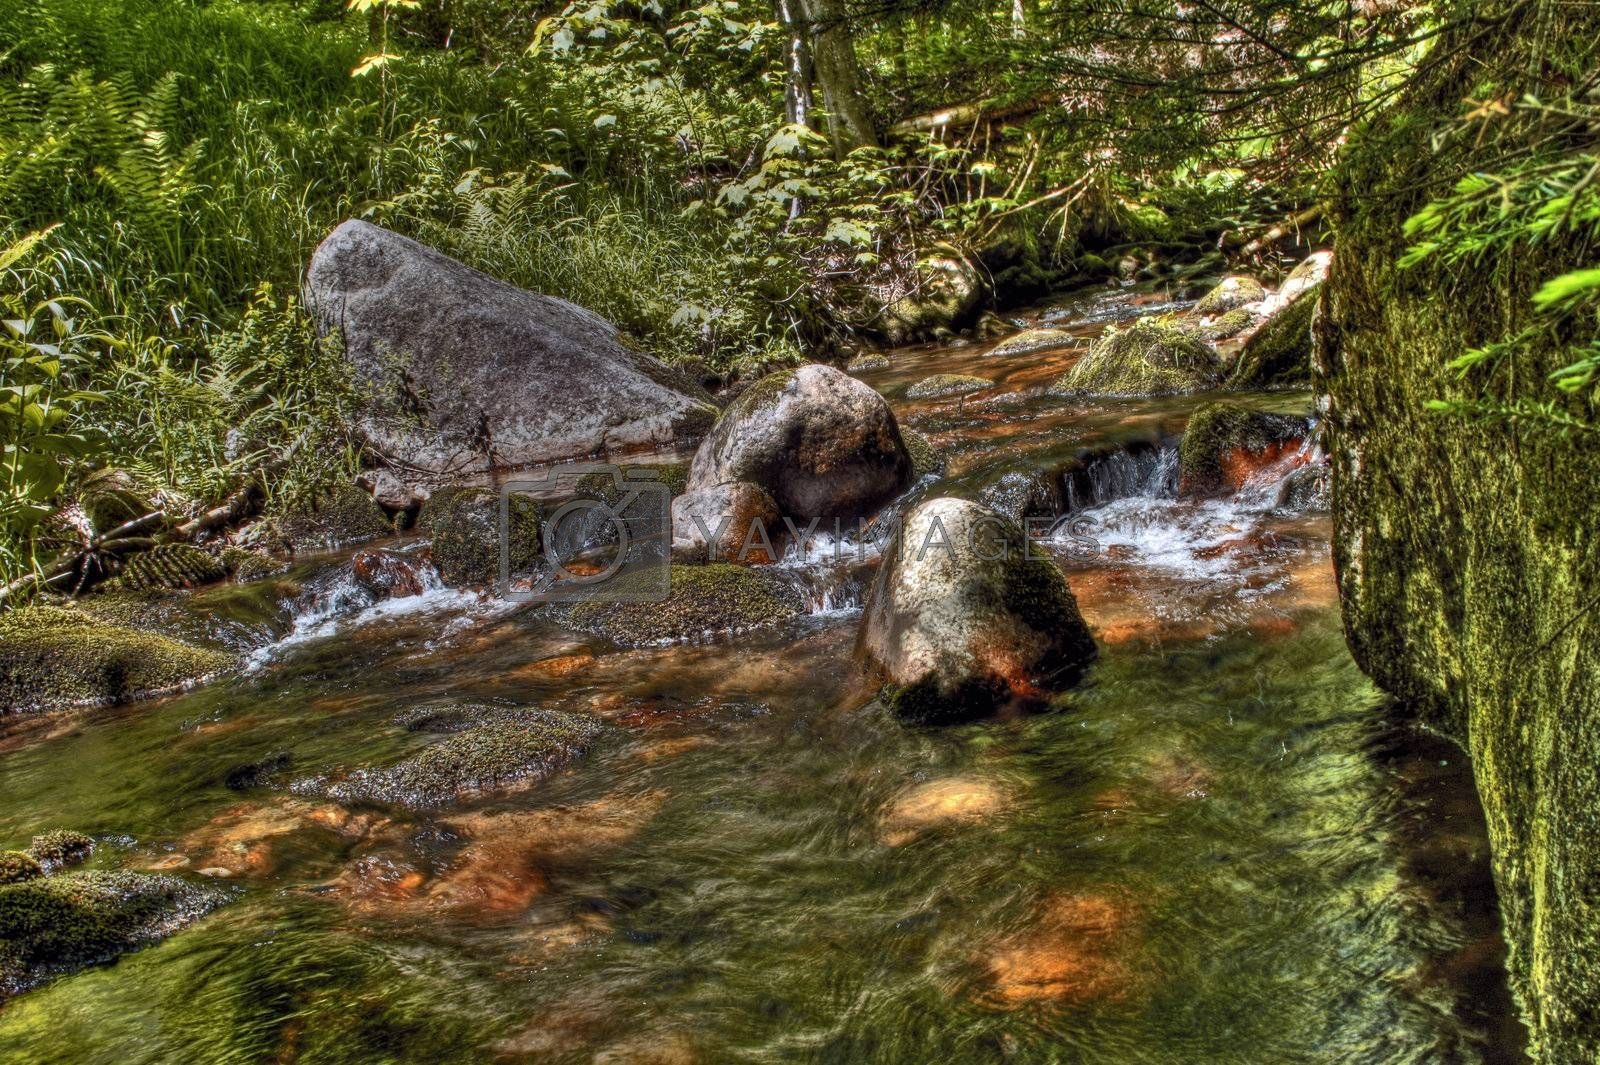 Creek flowing through a forest with rocks and moss